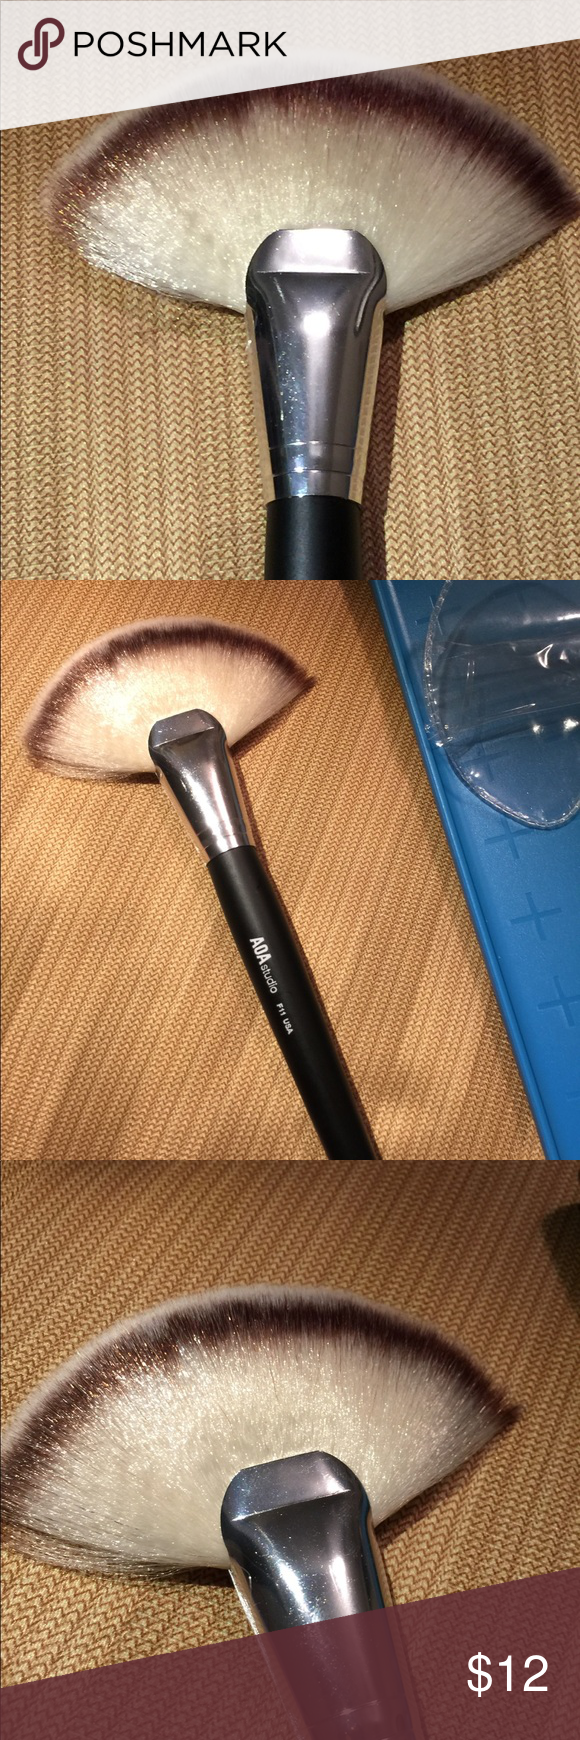 Large Fan Makeup Brush F11 Large Fan Brush Use This Amazing Fluffy Brush To Apply Highlighter To Your High Points O Fan Brush Makeup Natural Contour Large Fan